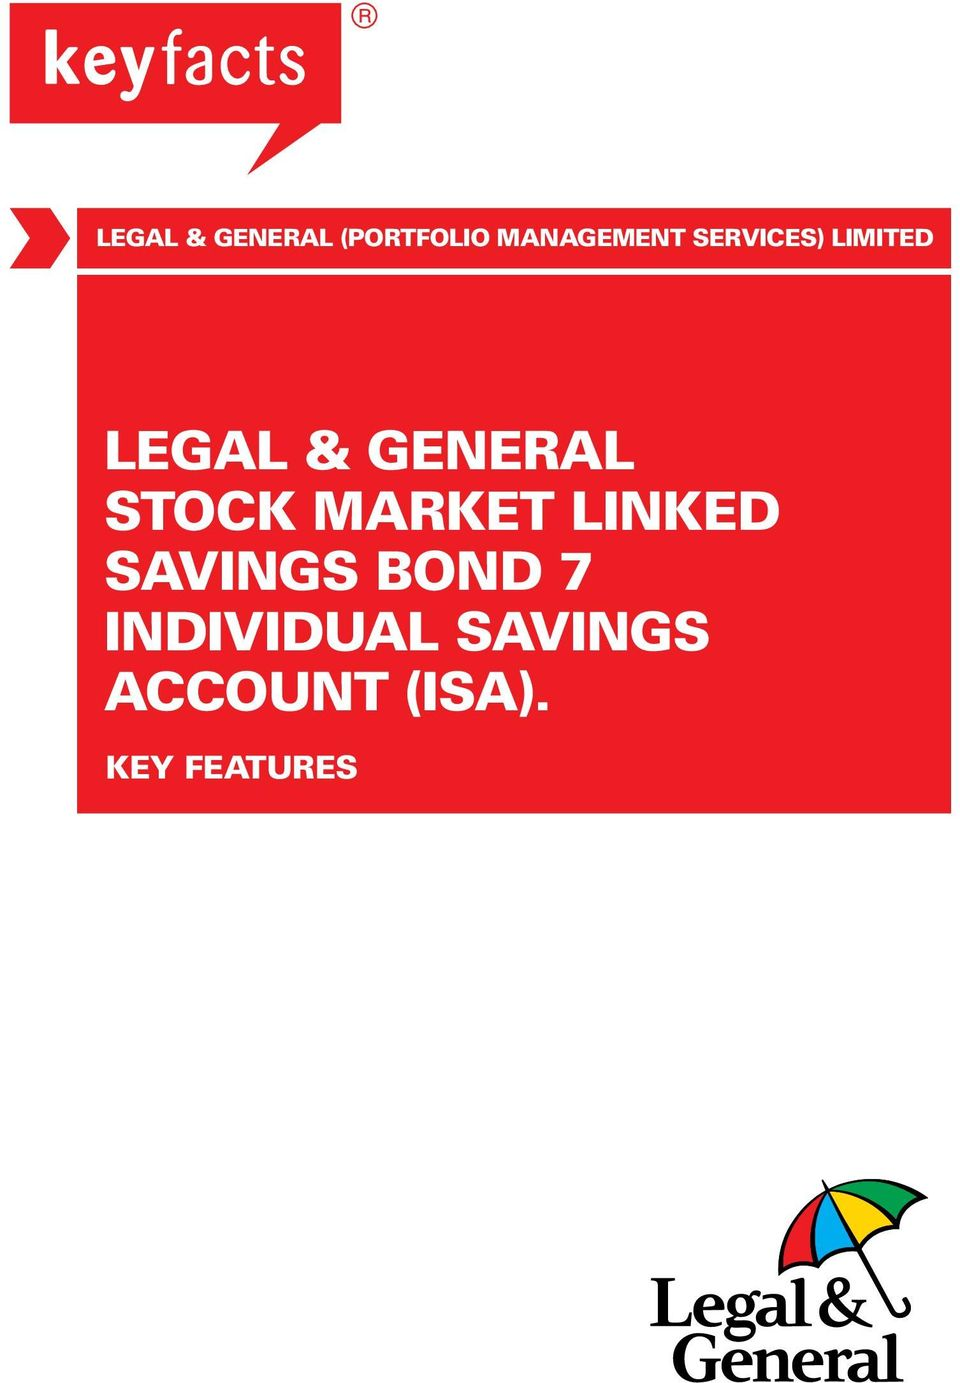 Stock Market Linked Savings Bond 7